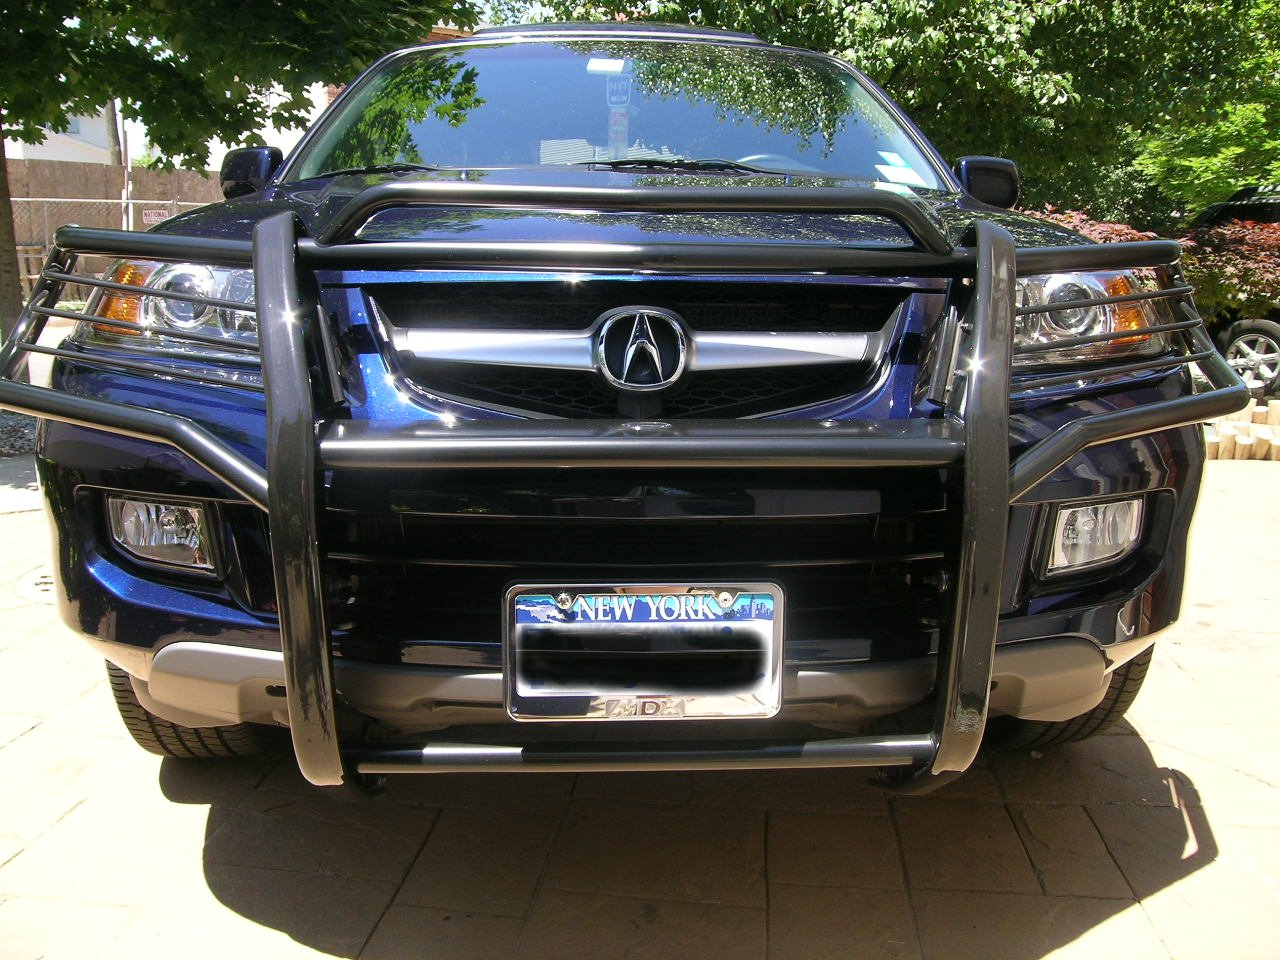 Anyone Have Pics W FRONT GRILLE Acura MDX Forum Acura MDX SUV - Acura mdx front grill